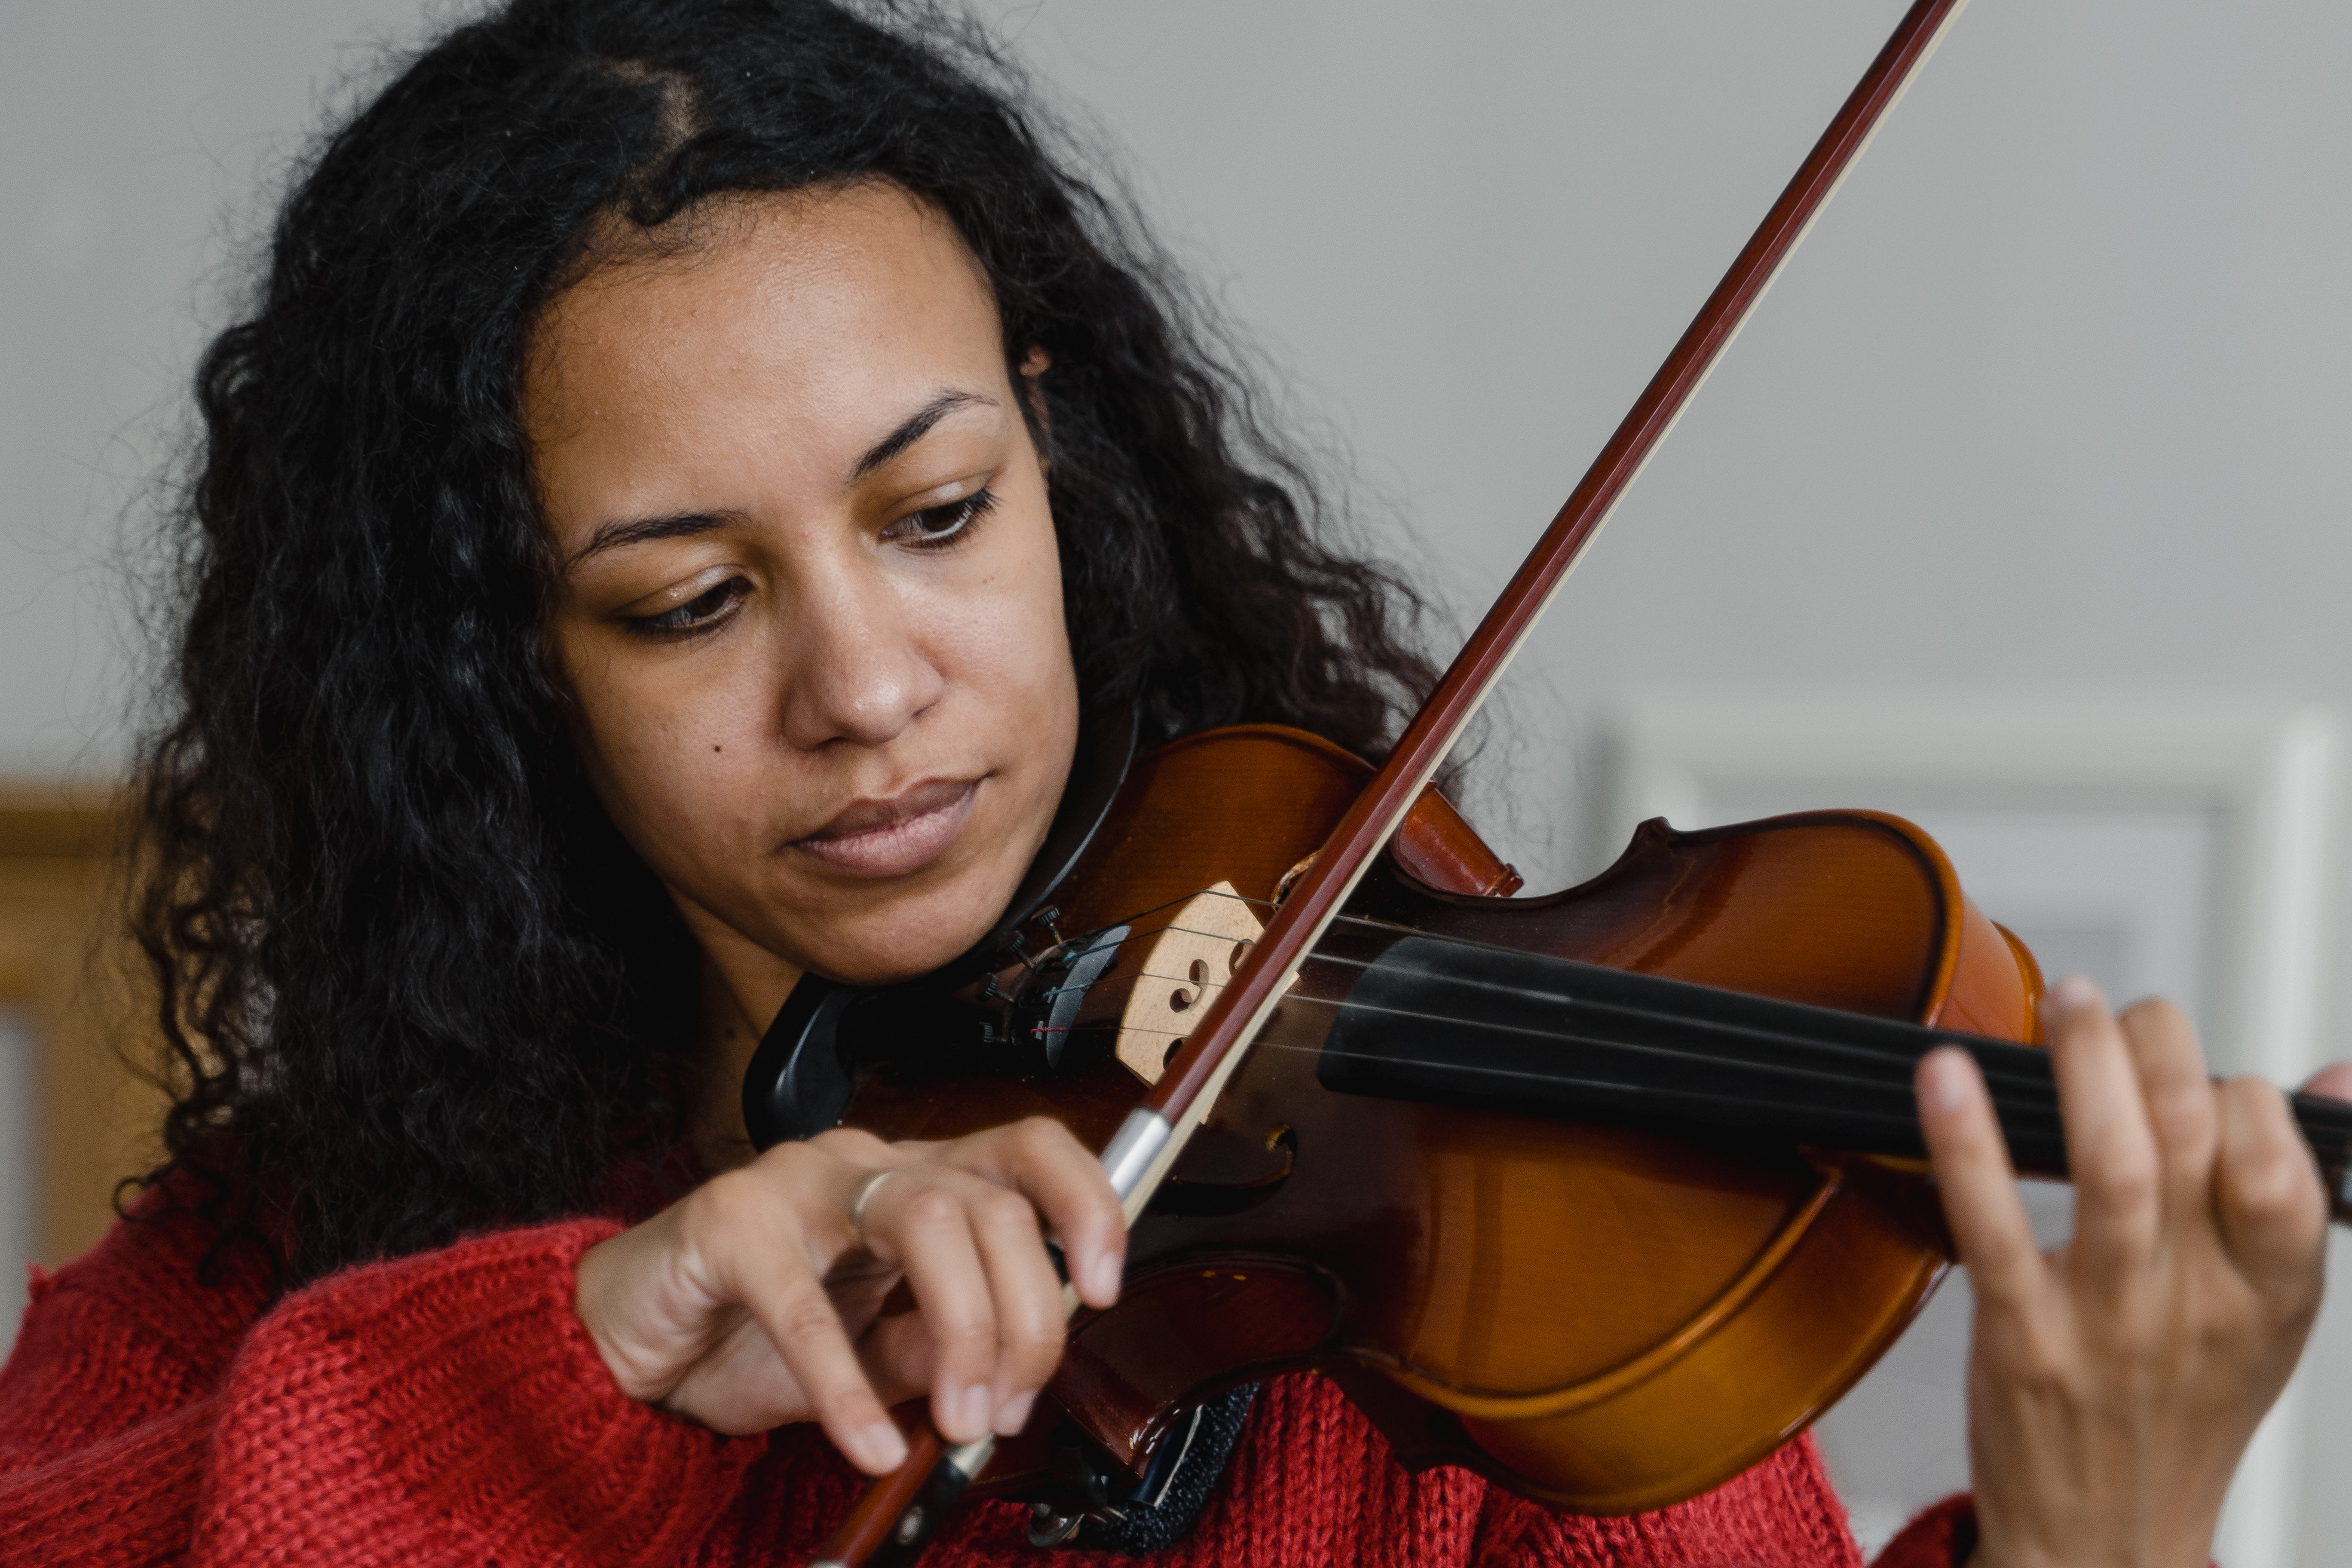 violin lessons for kids and adults near me in oakhurst nj